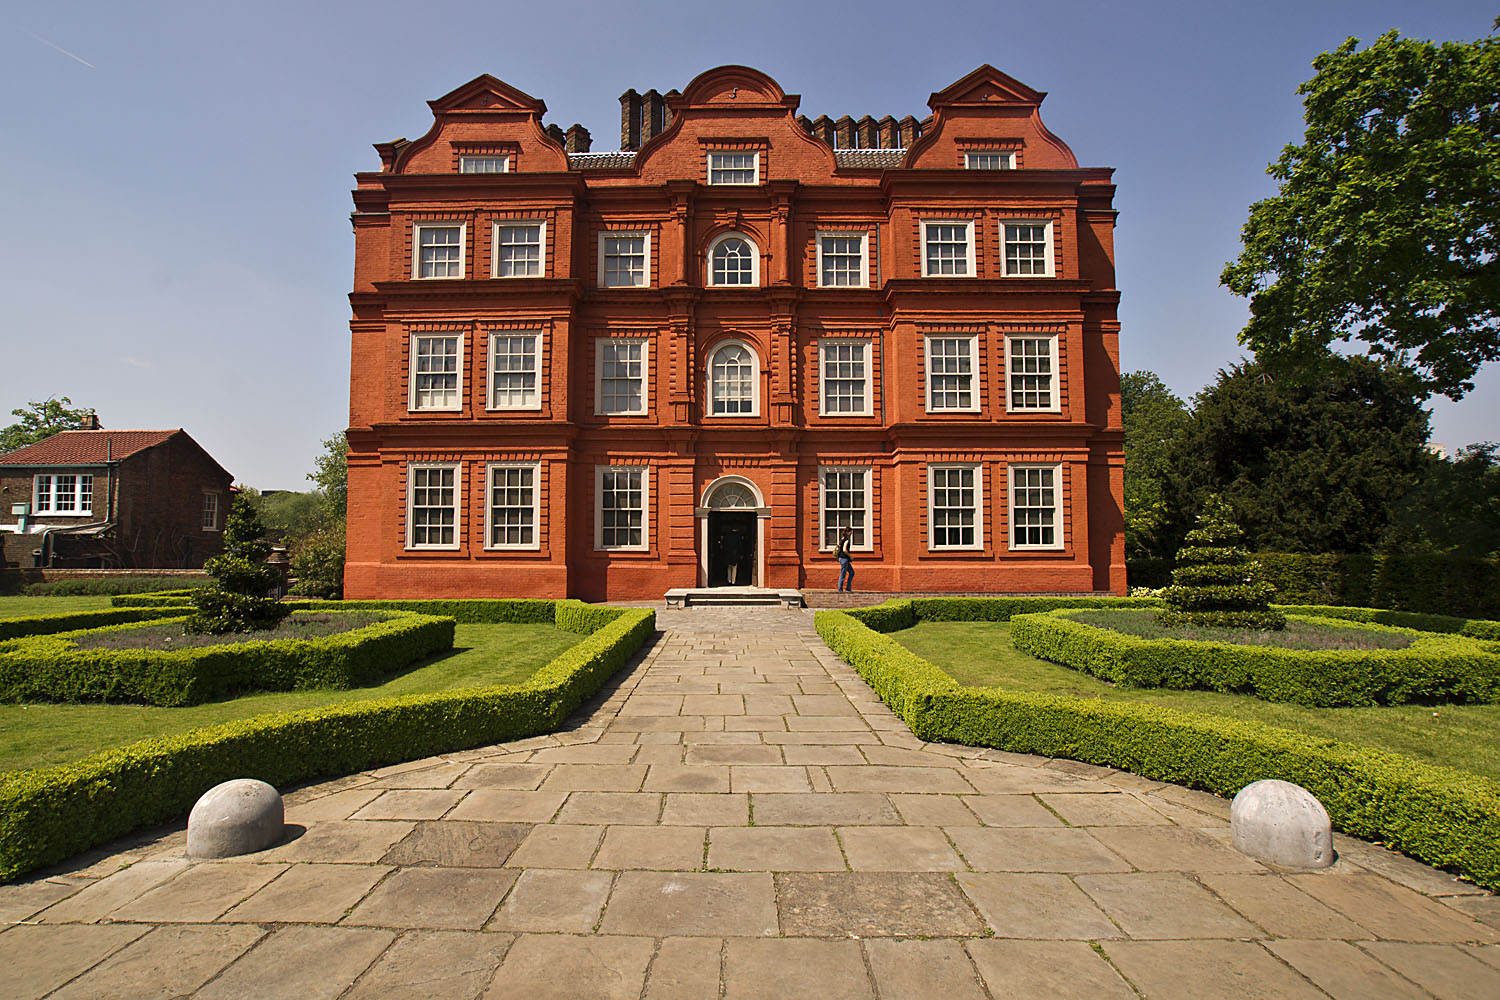 Kew palace the dutch house meanderings abound for Dutch house